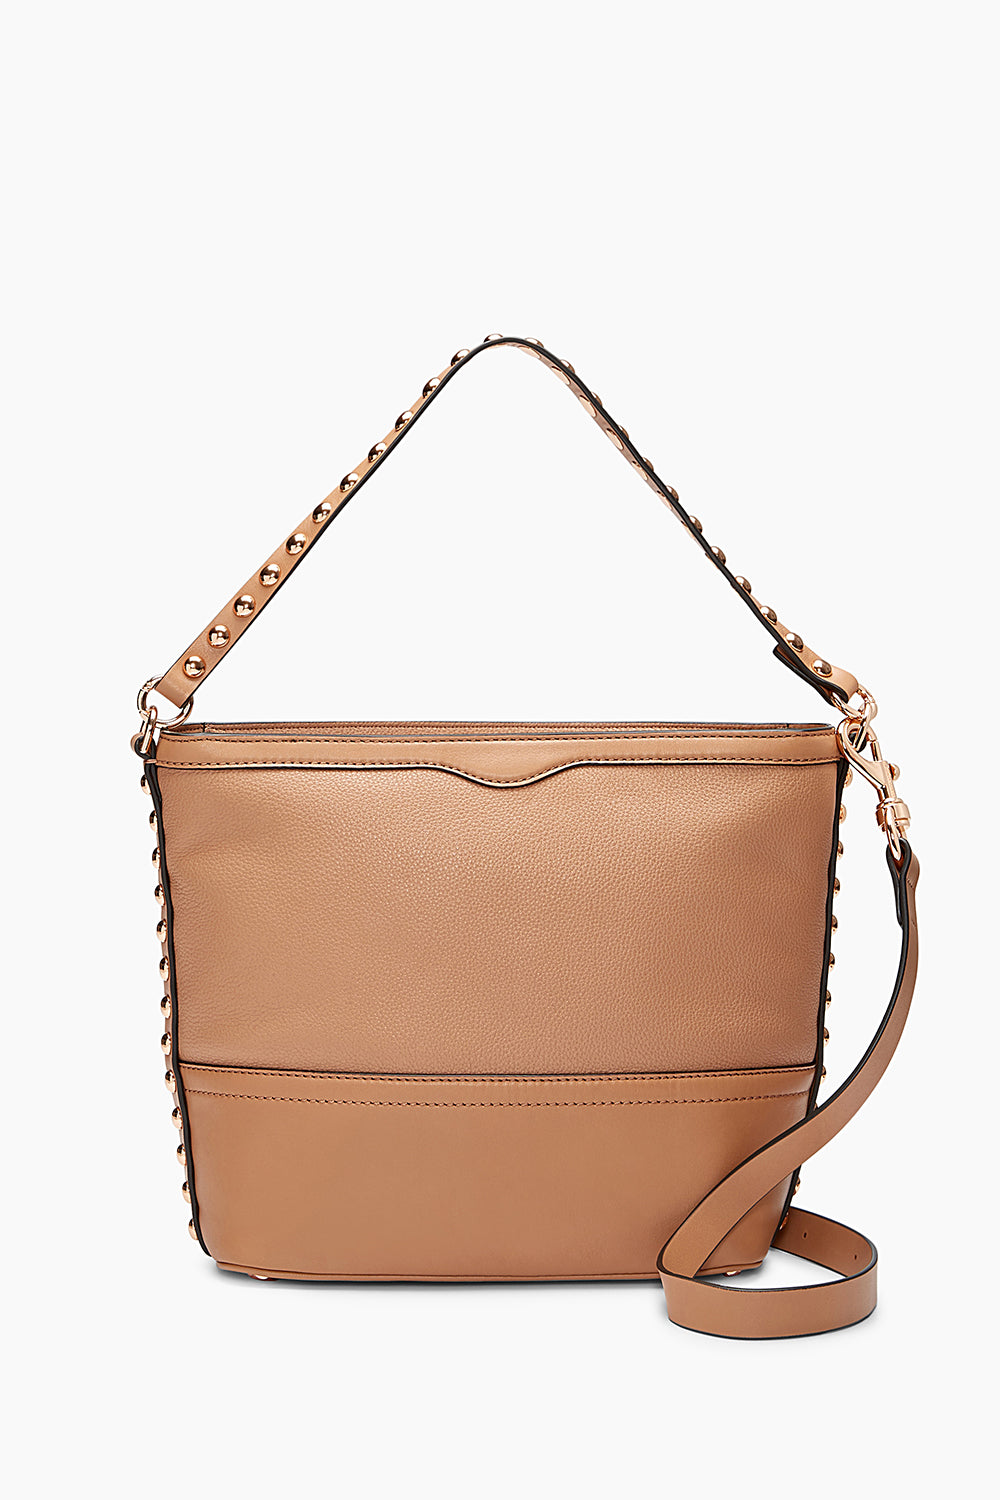 7e524a011f Desert Tan Blythe Small Convertible Hobo Bag